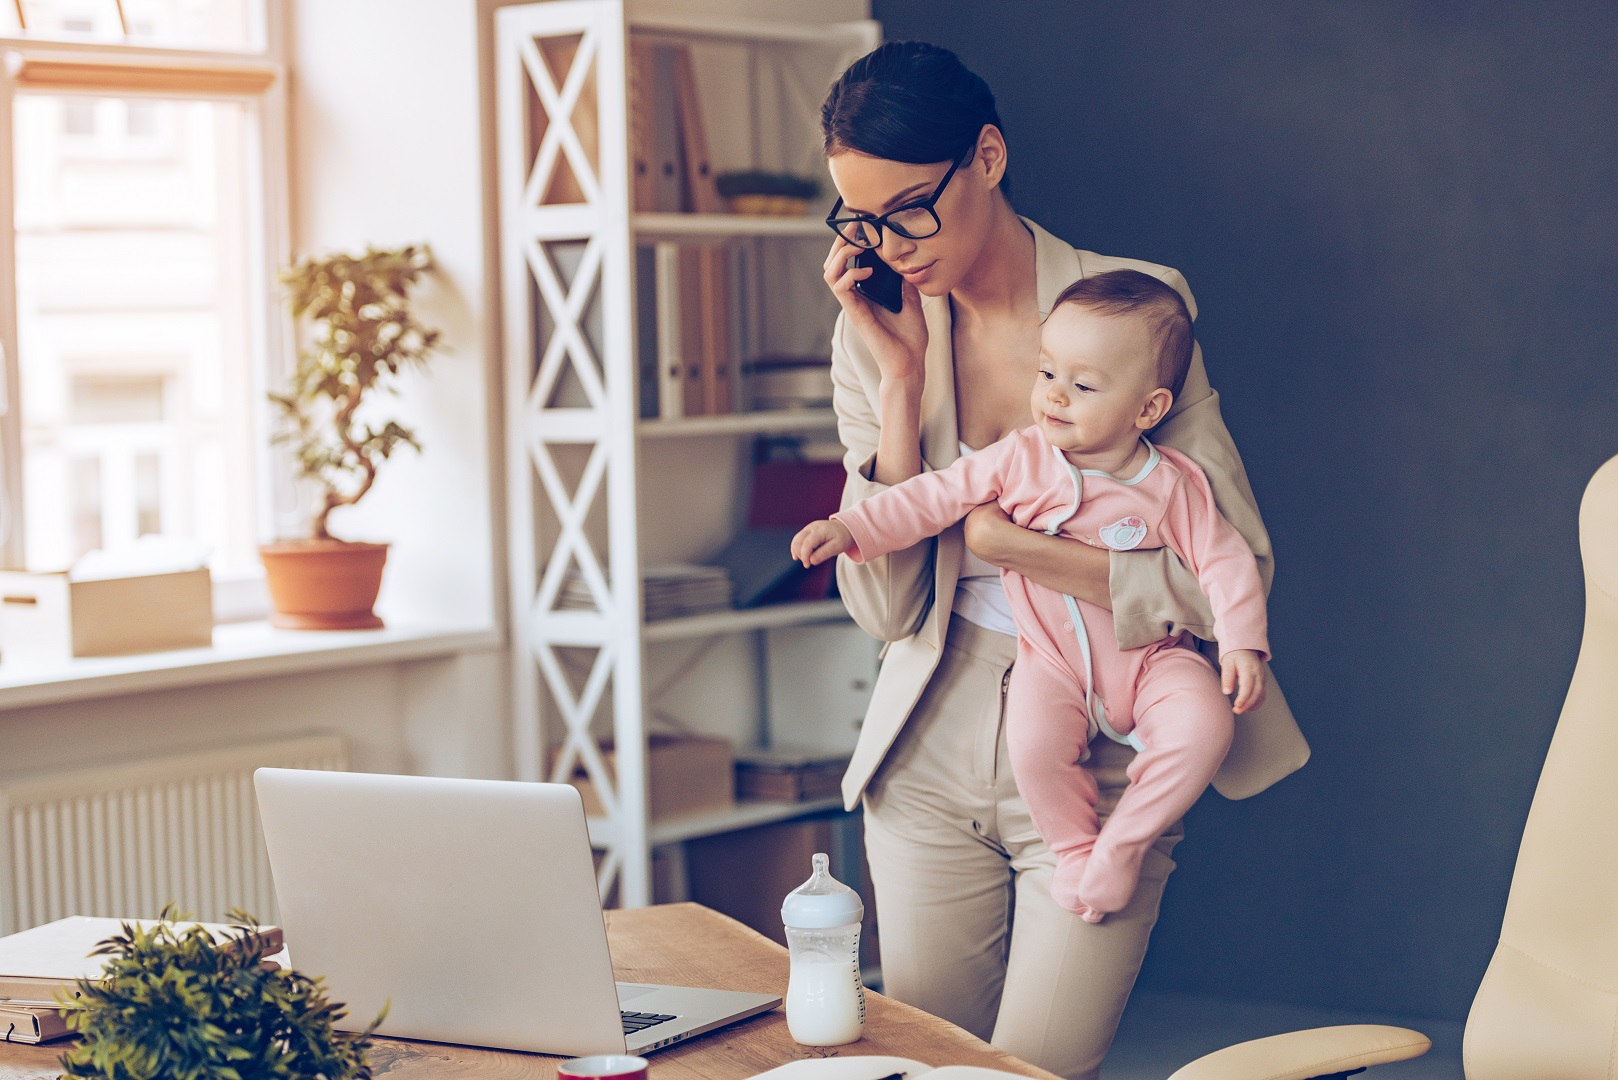 Mom Holding Baby Standing Working From Home On Phone Call